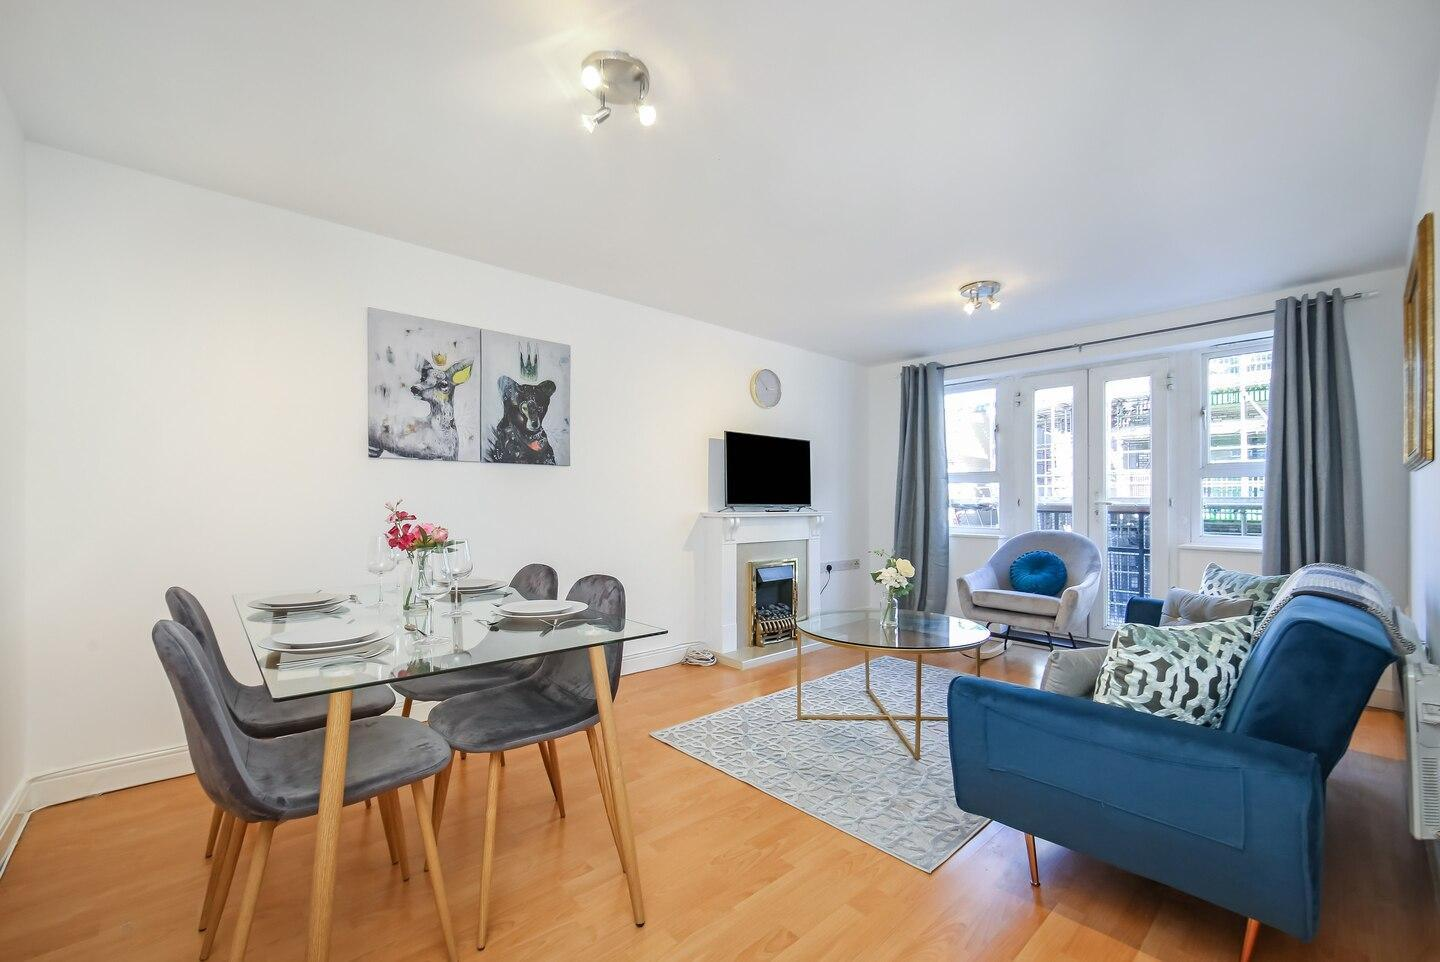 Suites by Rehoboth ★ The Hyde ★ London Zone 3